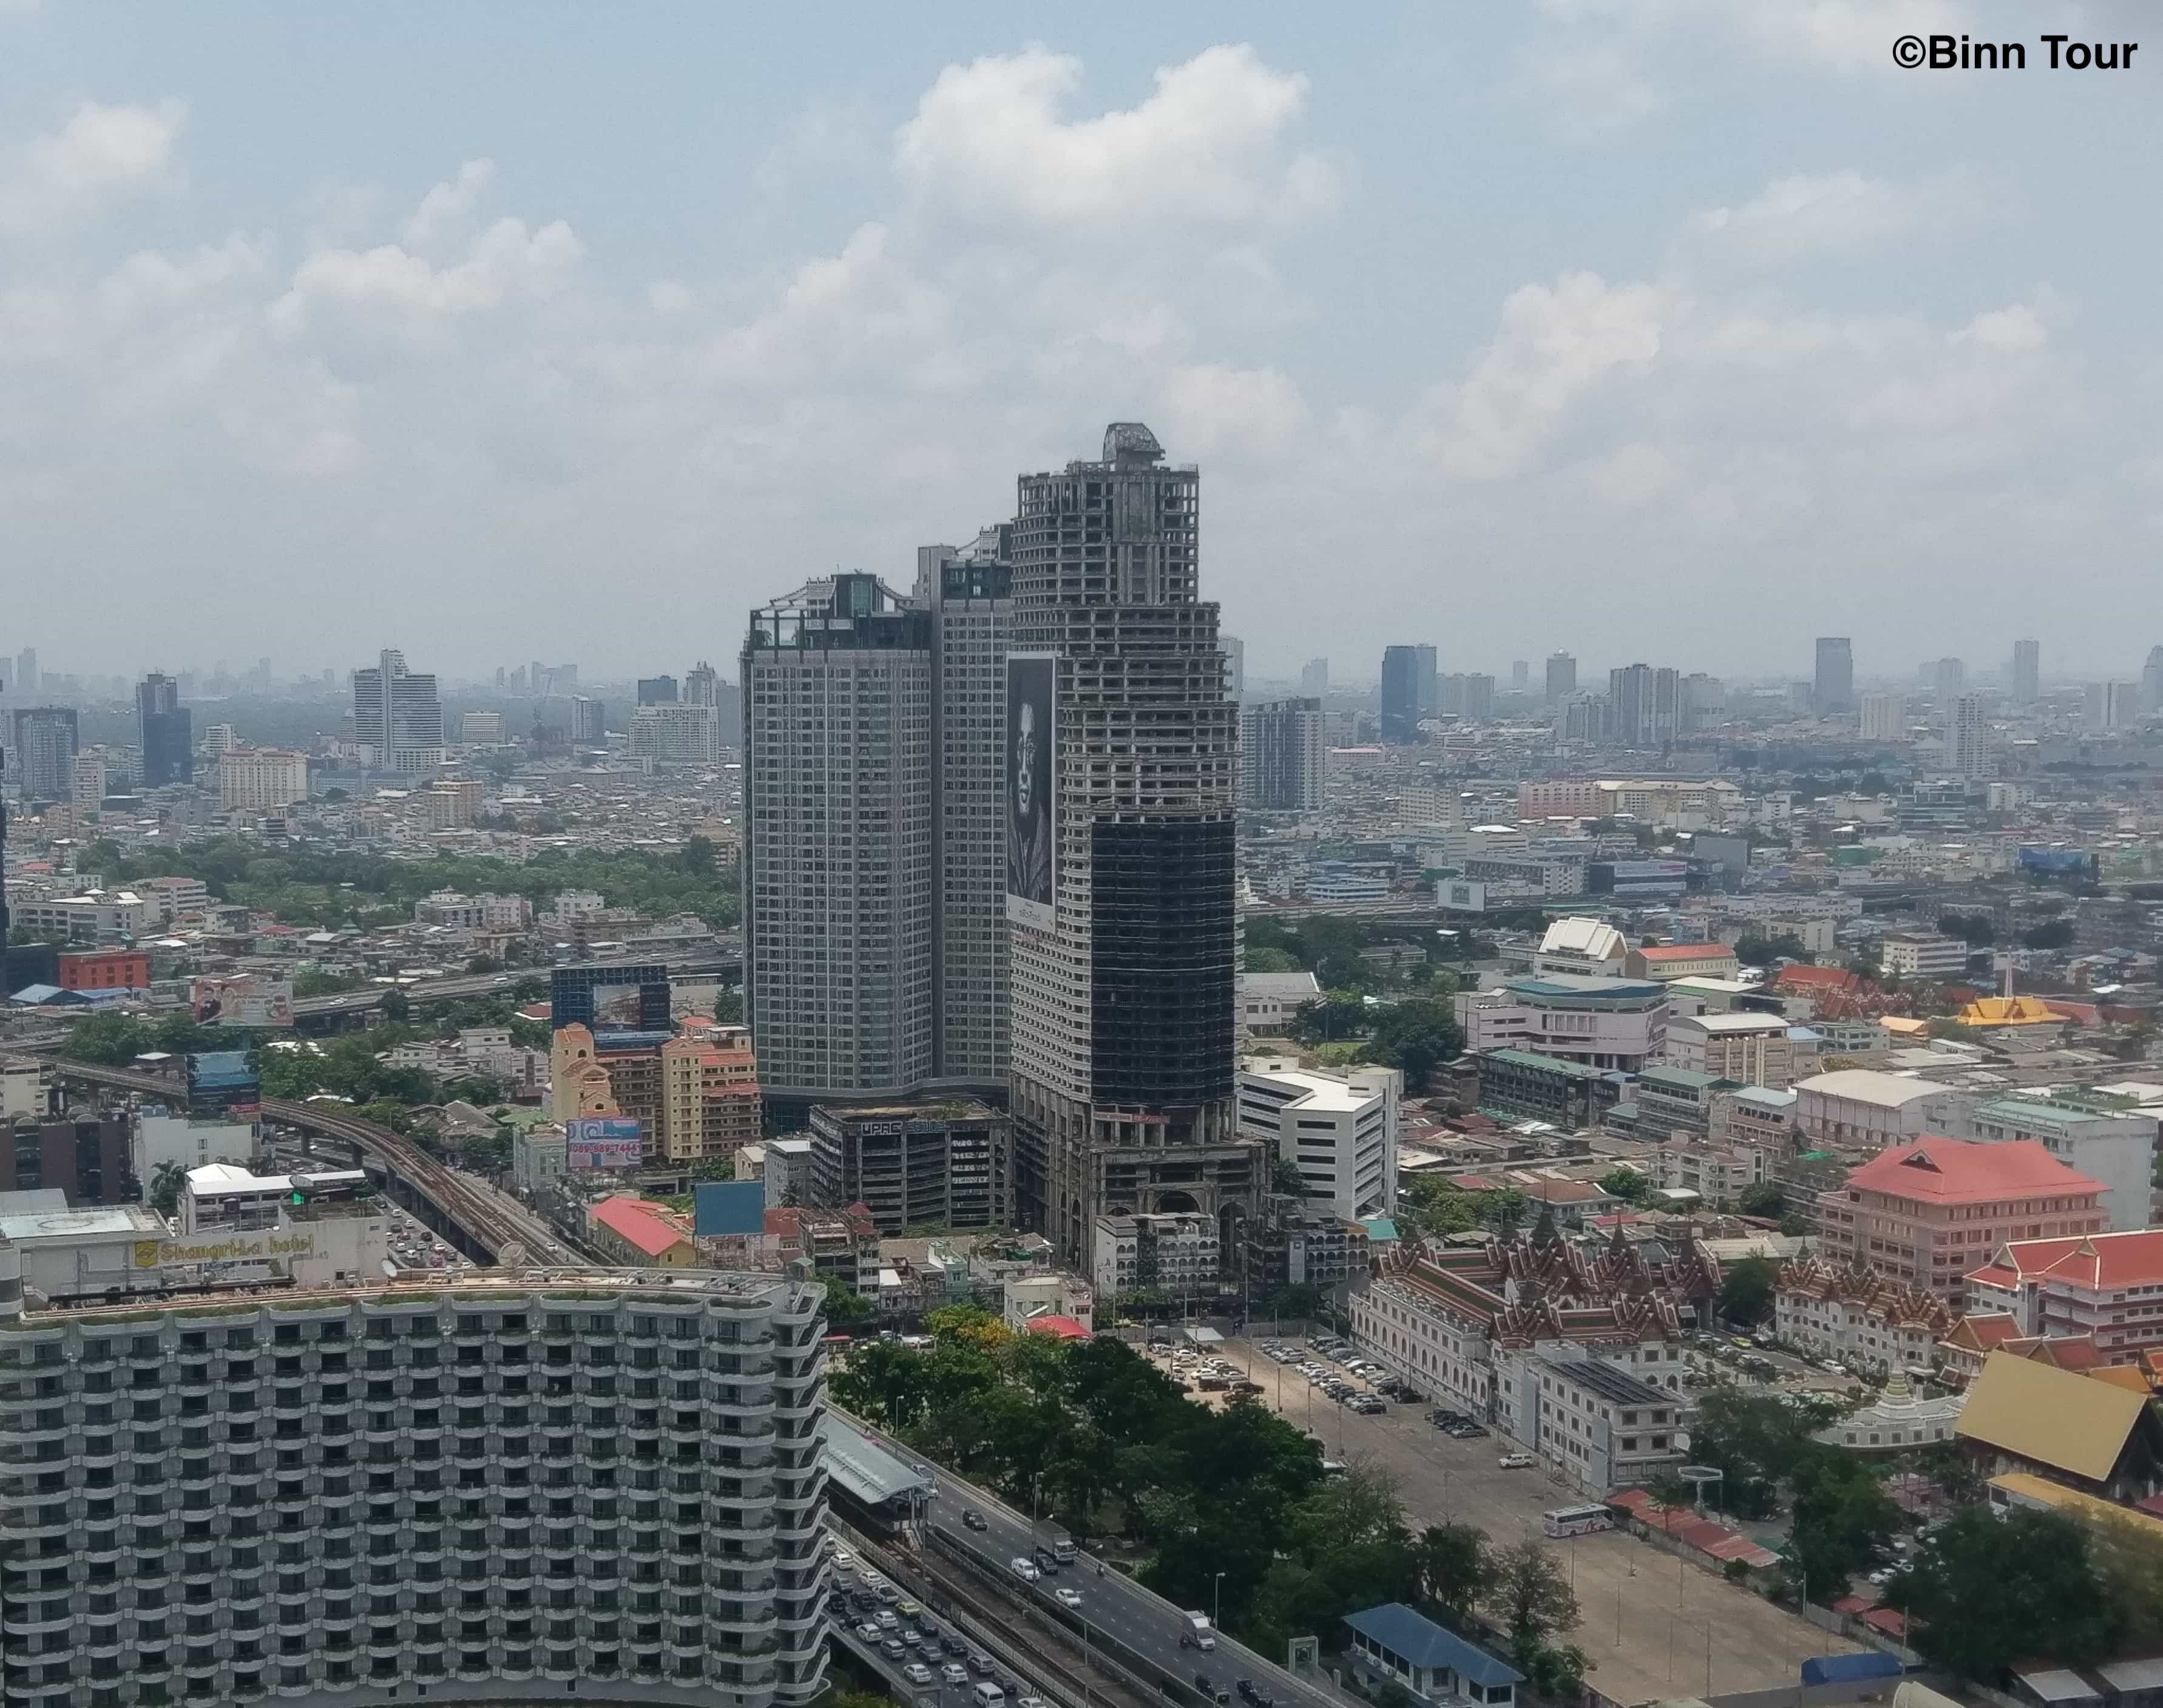 Front view of Sathorn Unique Tower from afar